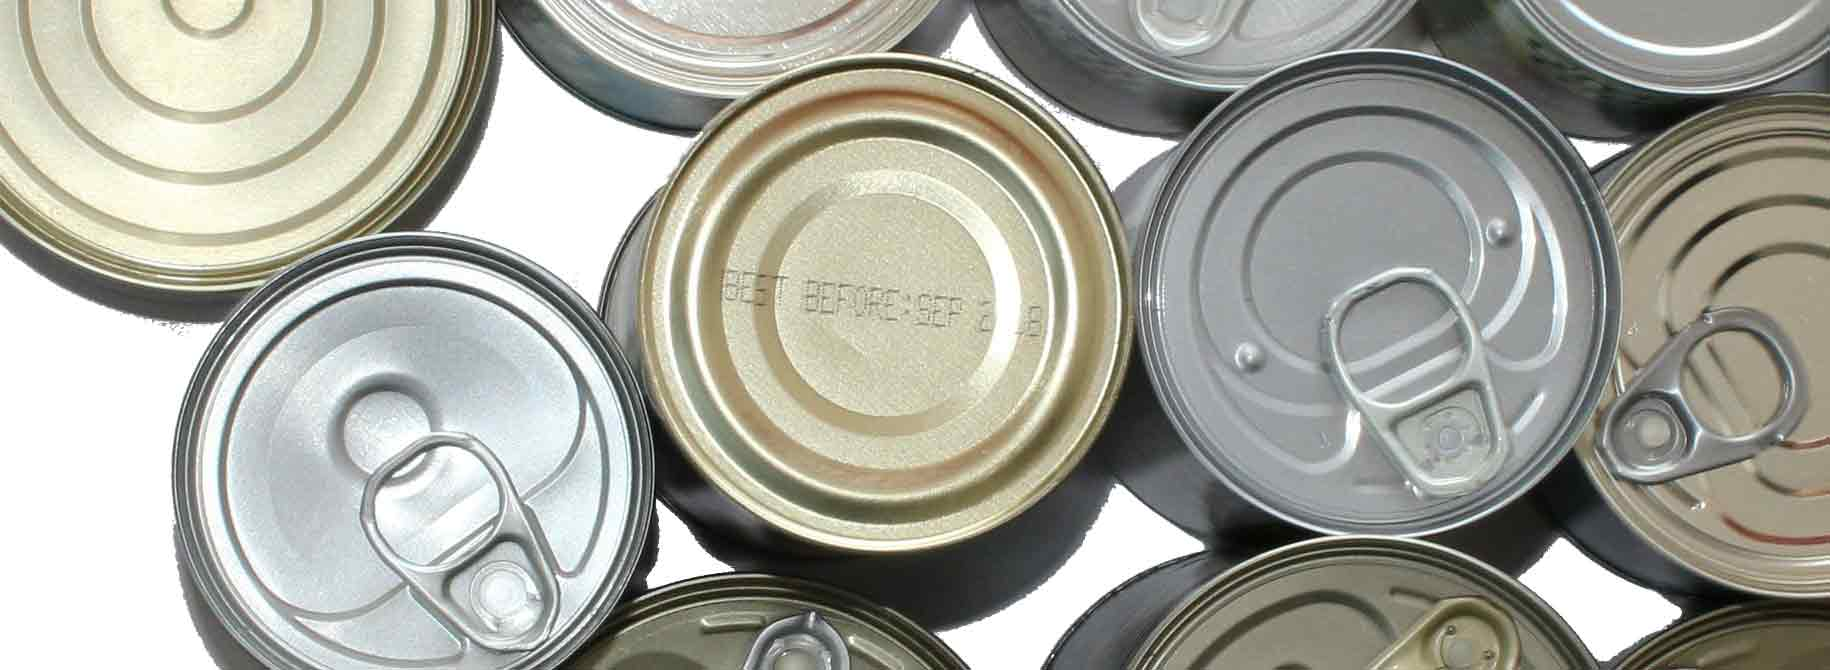 picture of metal cans